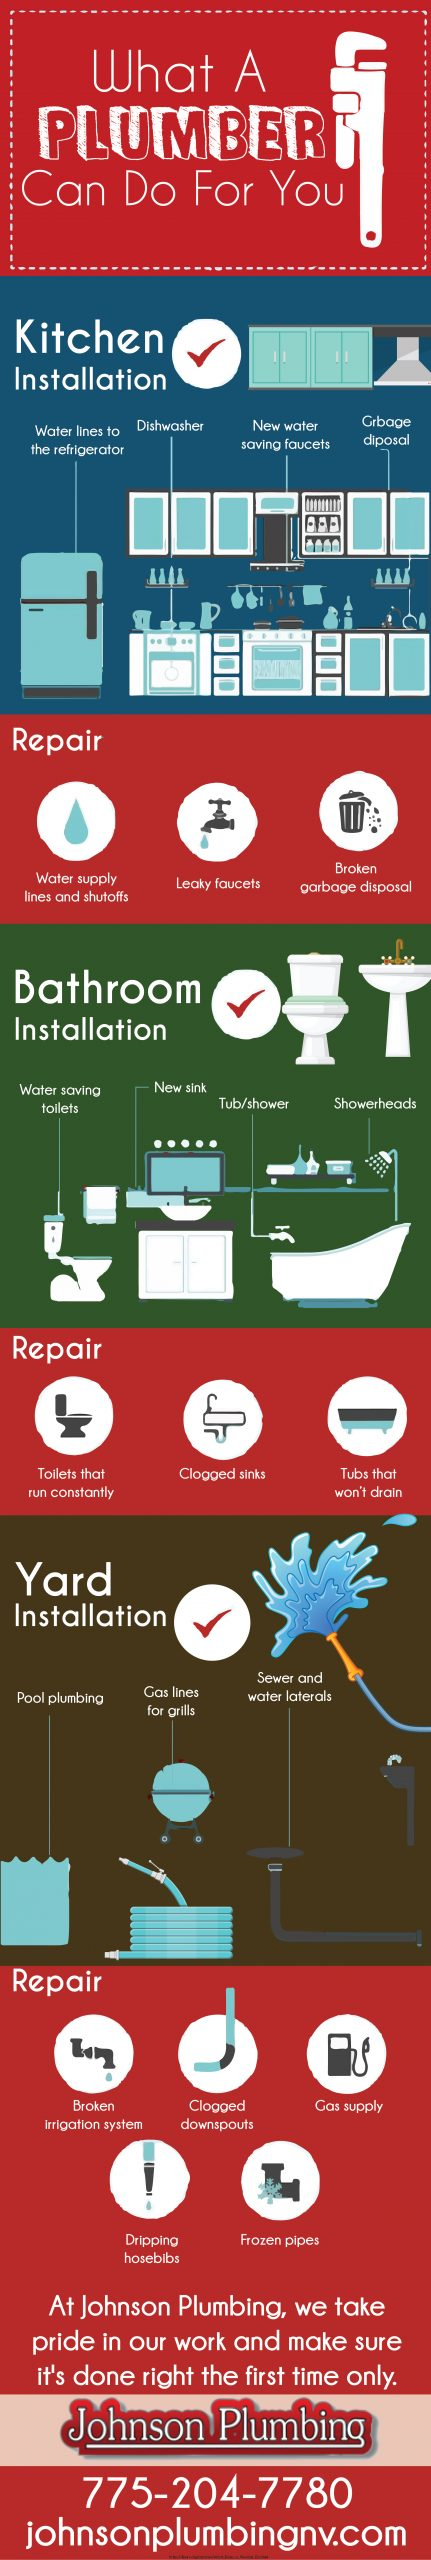 What a Plumber Can Do For You